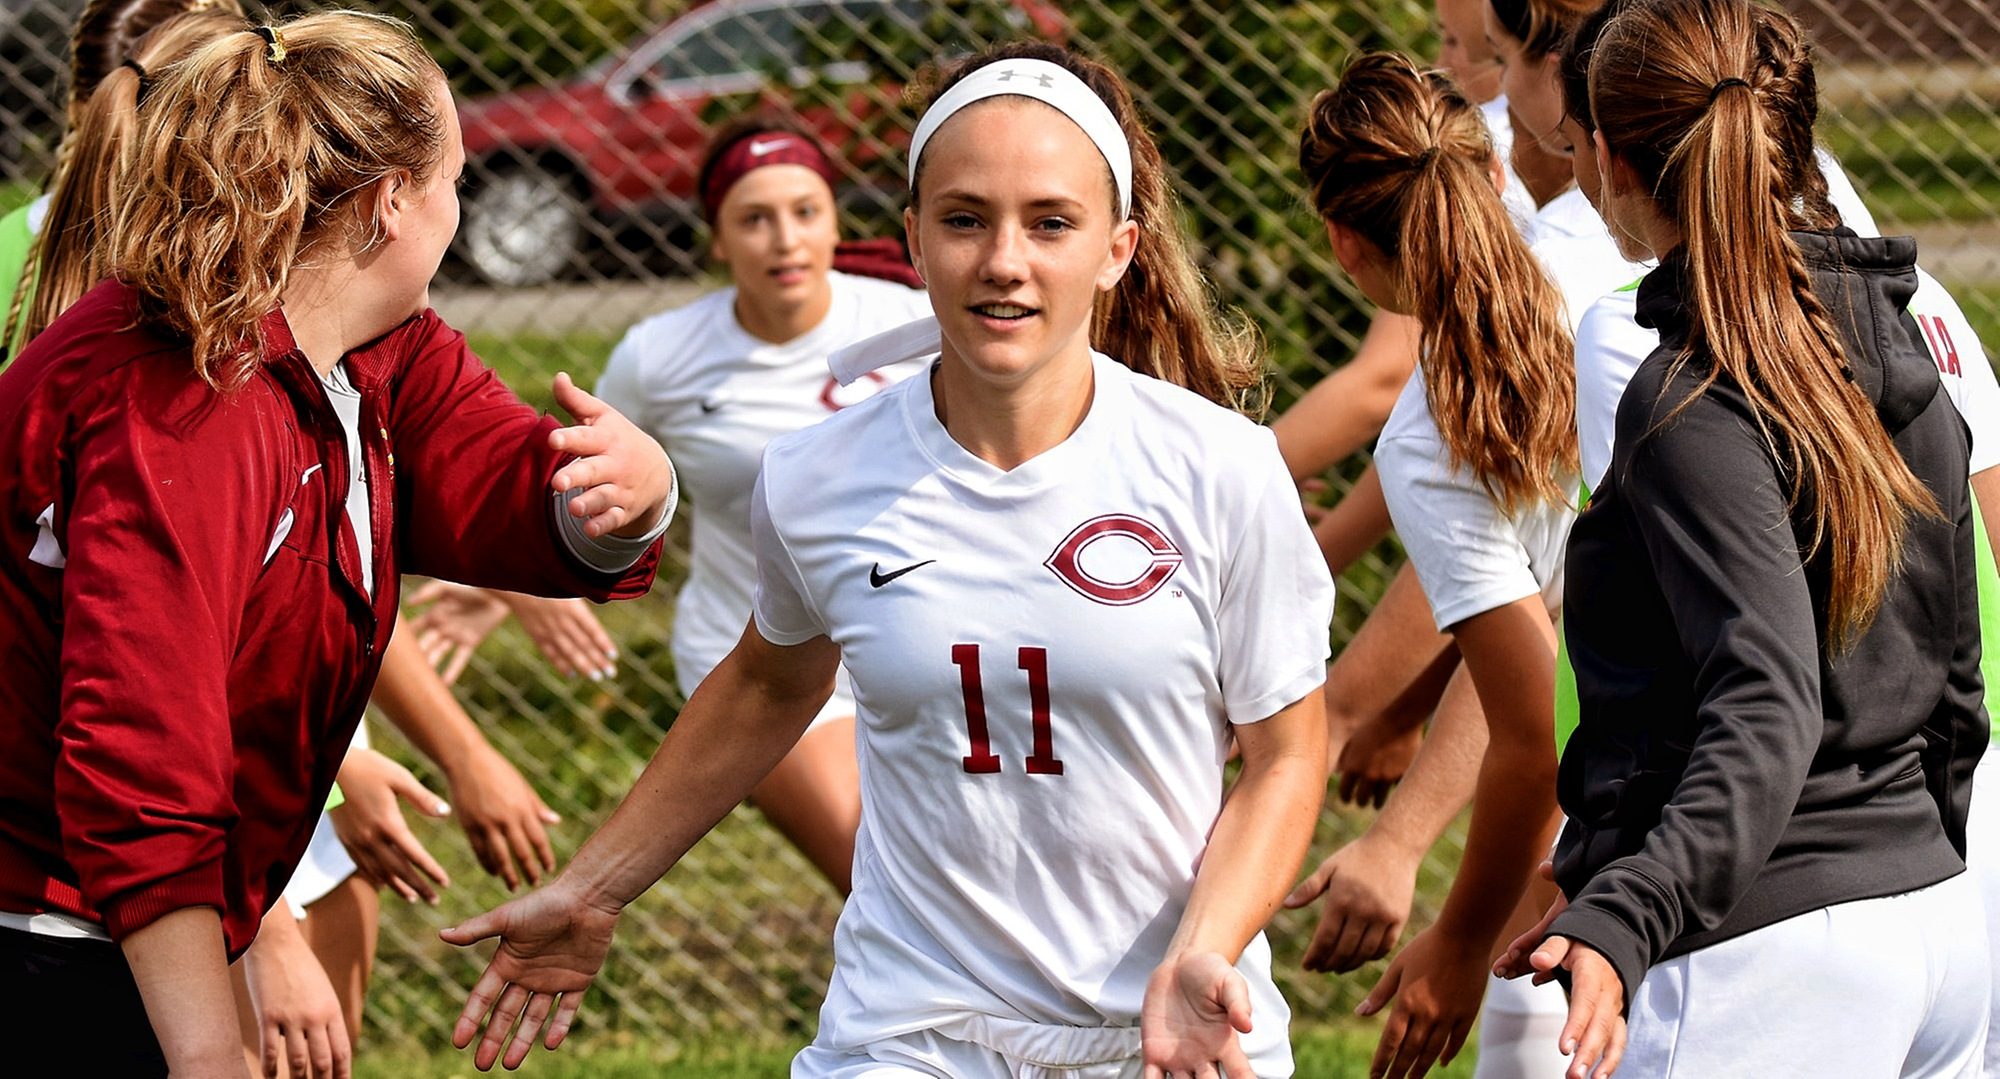 Senior Karsen Granning scored three goals to help the Cobbers to a 4-0 win over Northland.